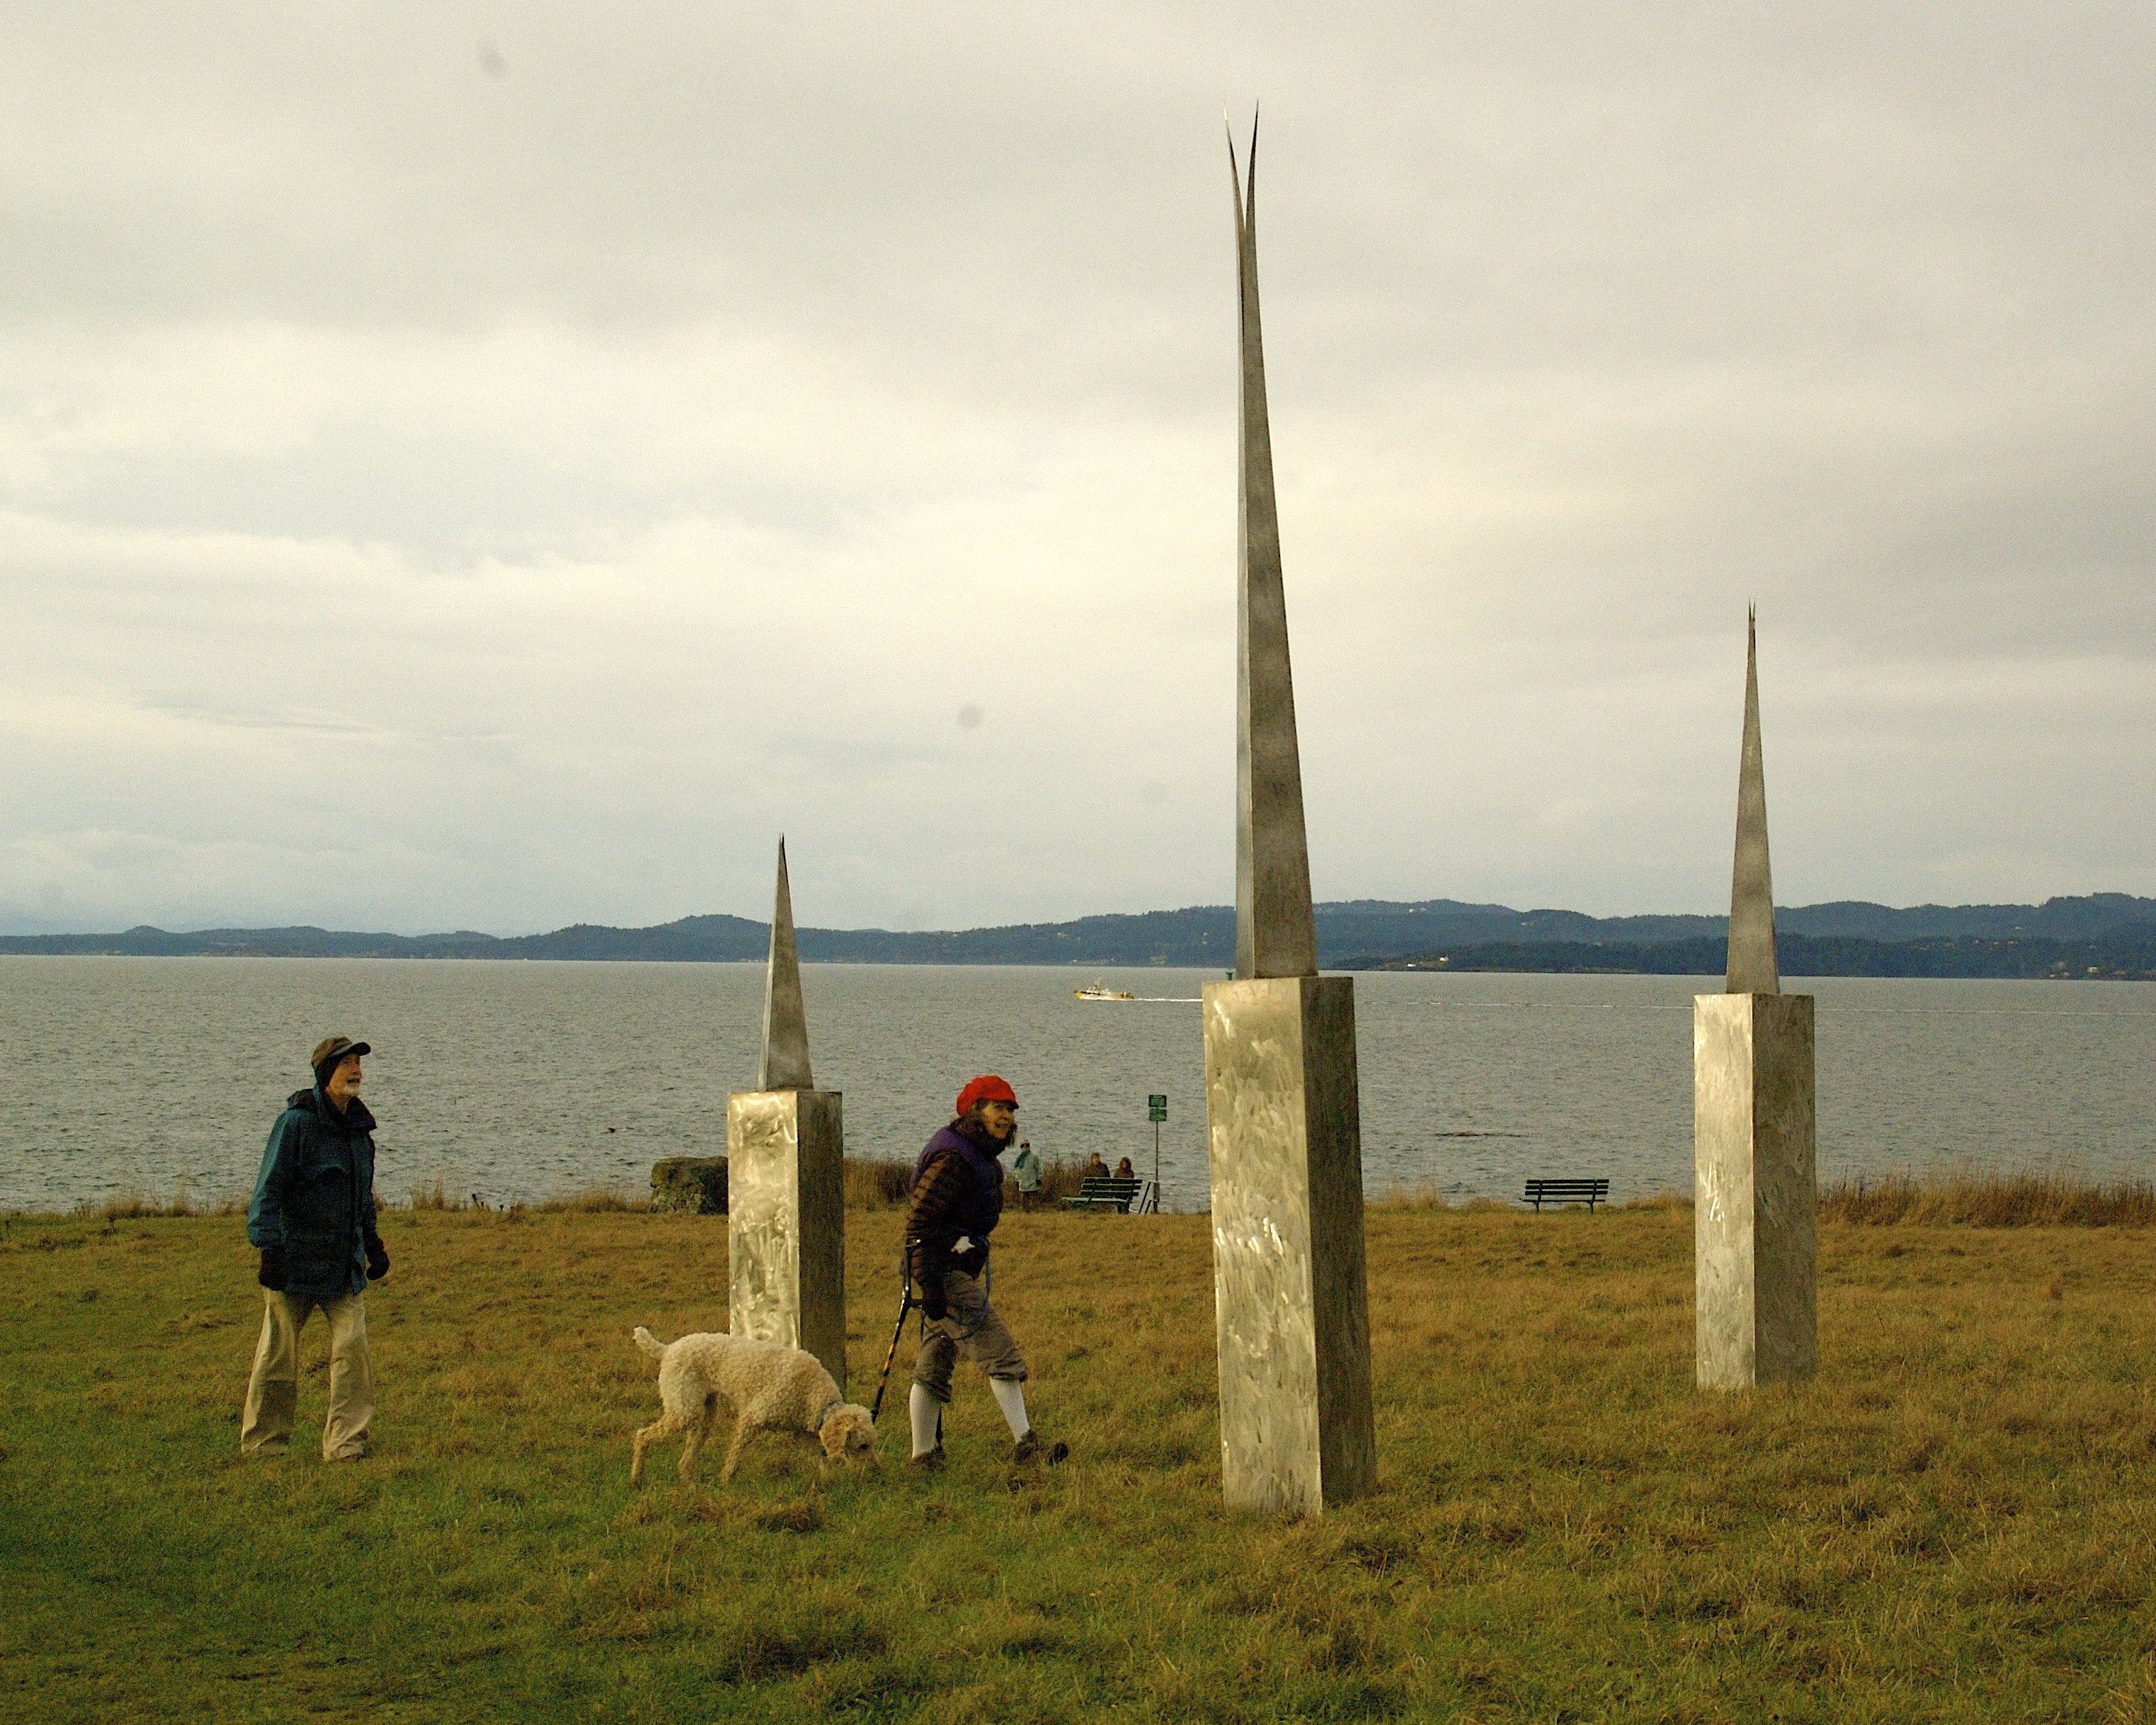 Picture of sculpture showing people beside it for scale.